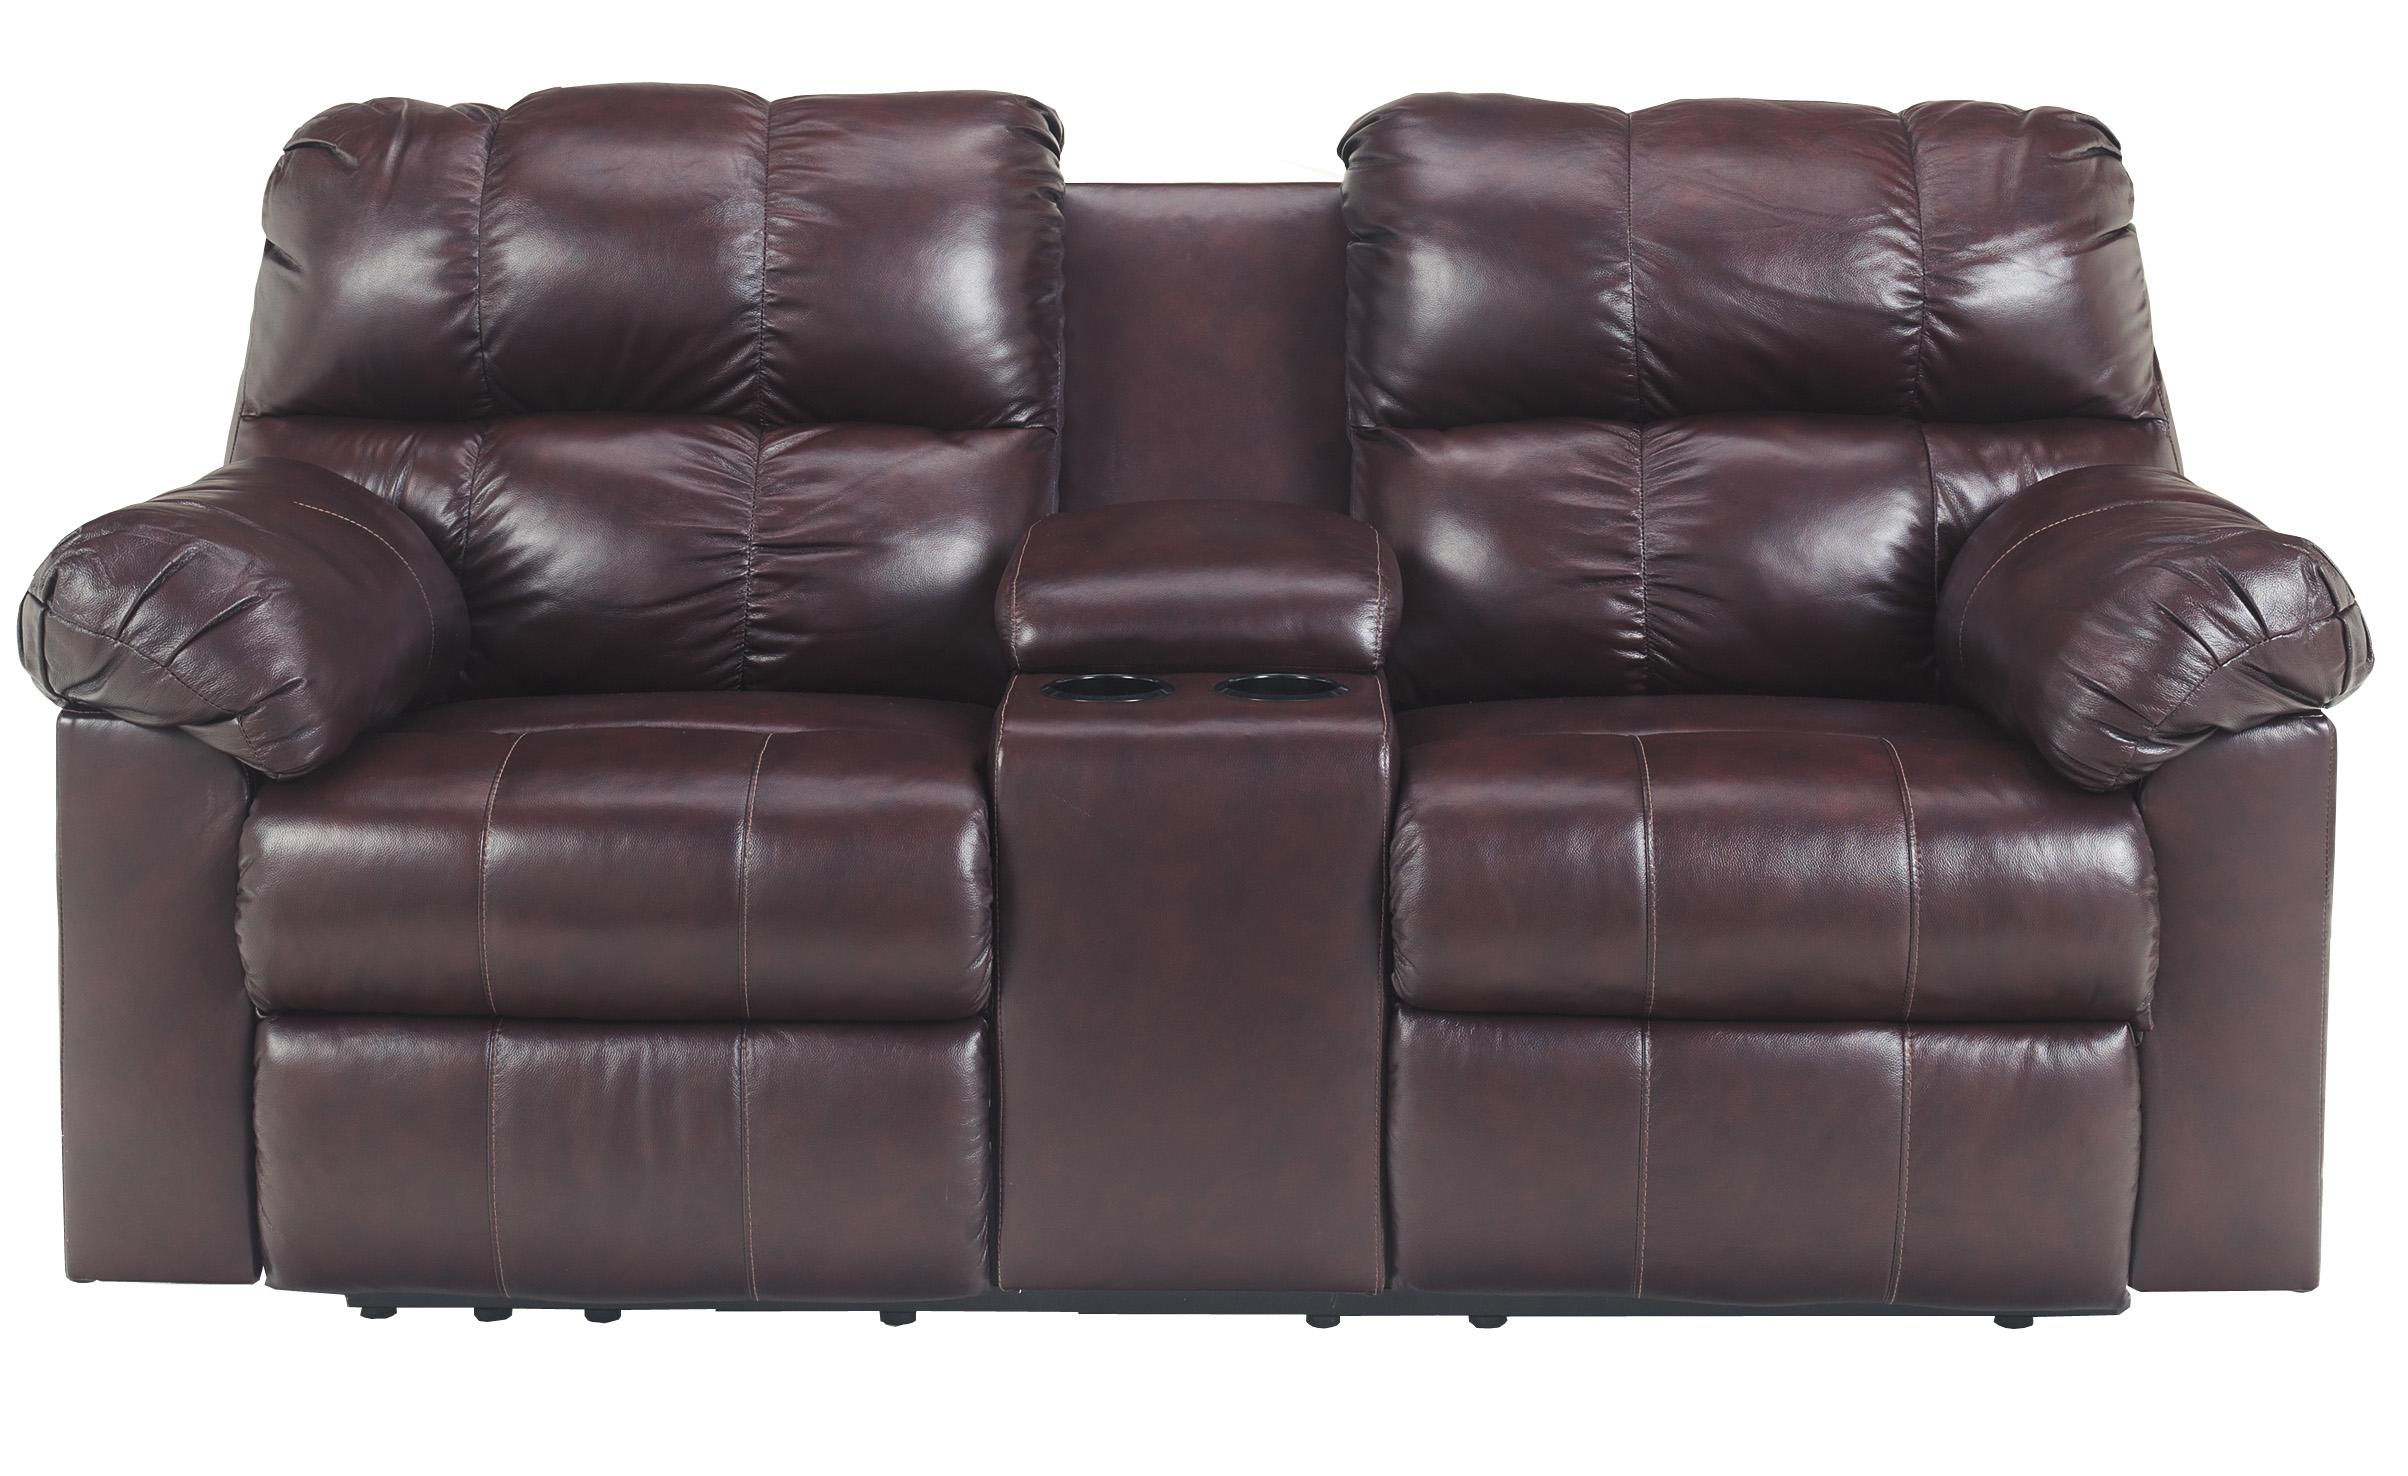 Signature Design by Ashley Kennard - Burgundy Dbl Rec Pwr Love Seat w/Console - Item Number: 2900096